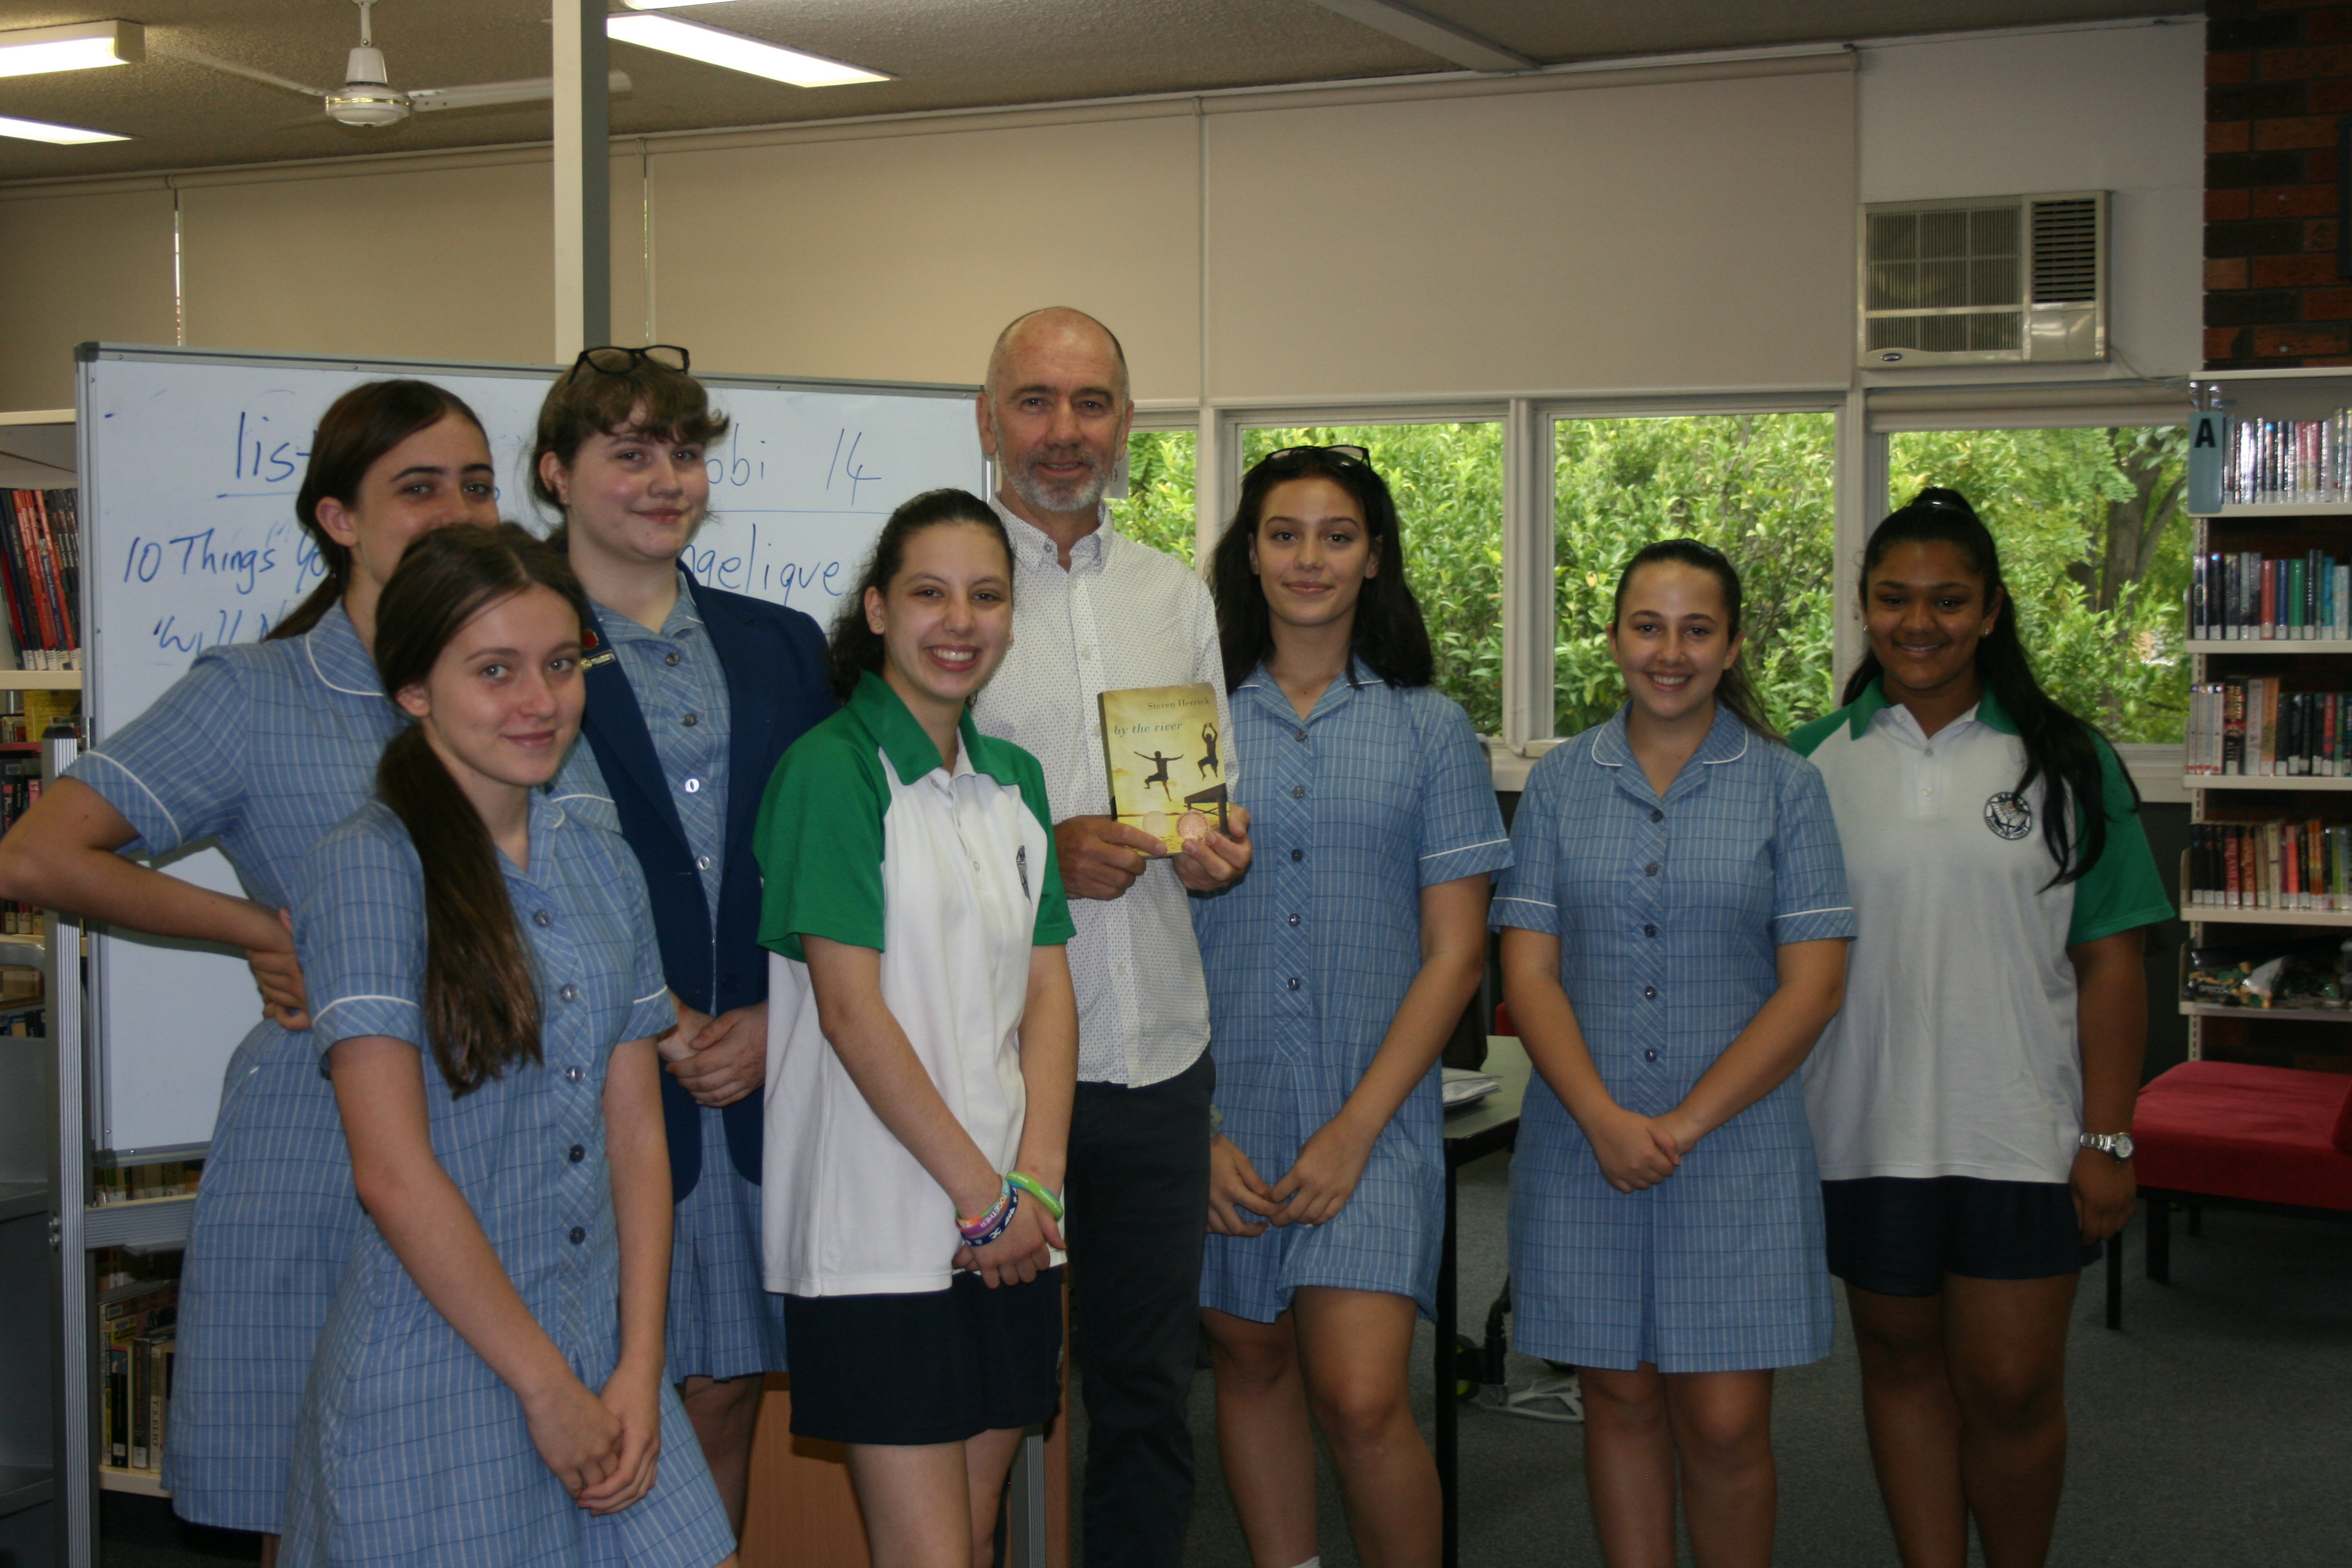 Visit by Steven Herrick poet and author of By the river